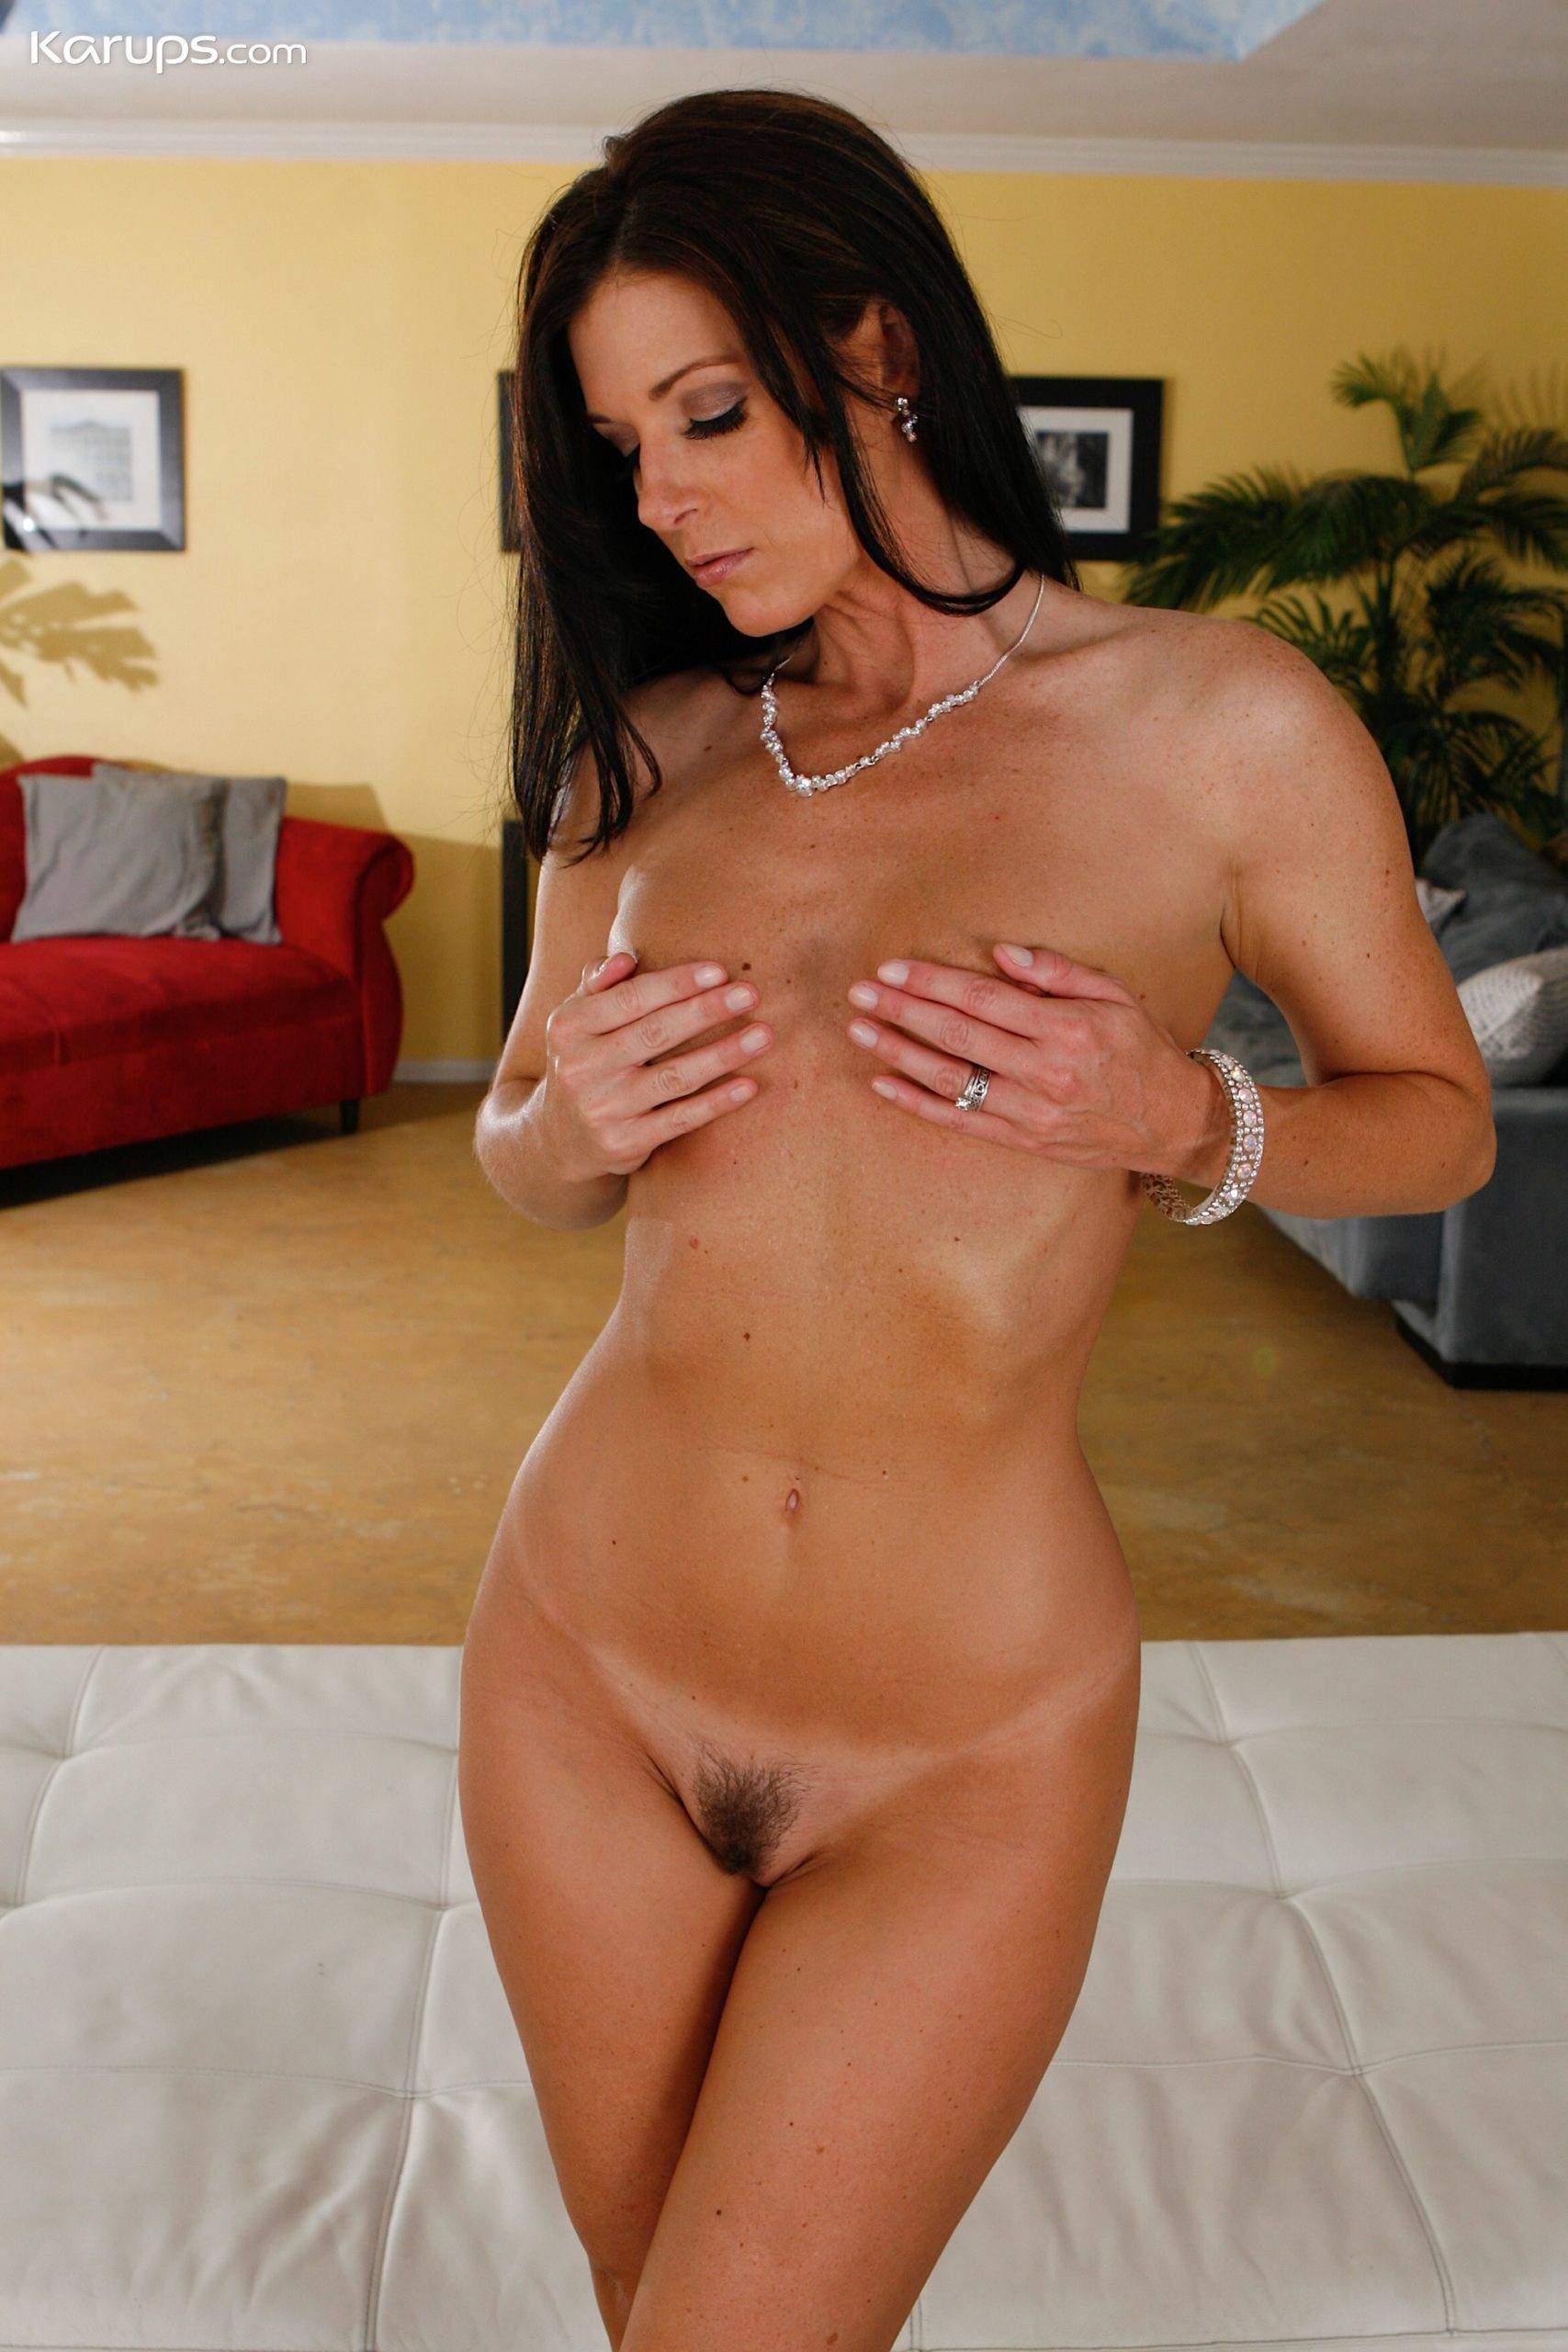 Brunette MILF India Summer wearing only her black heels at Karupsow